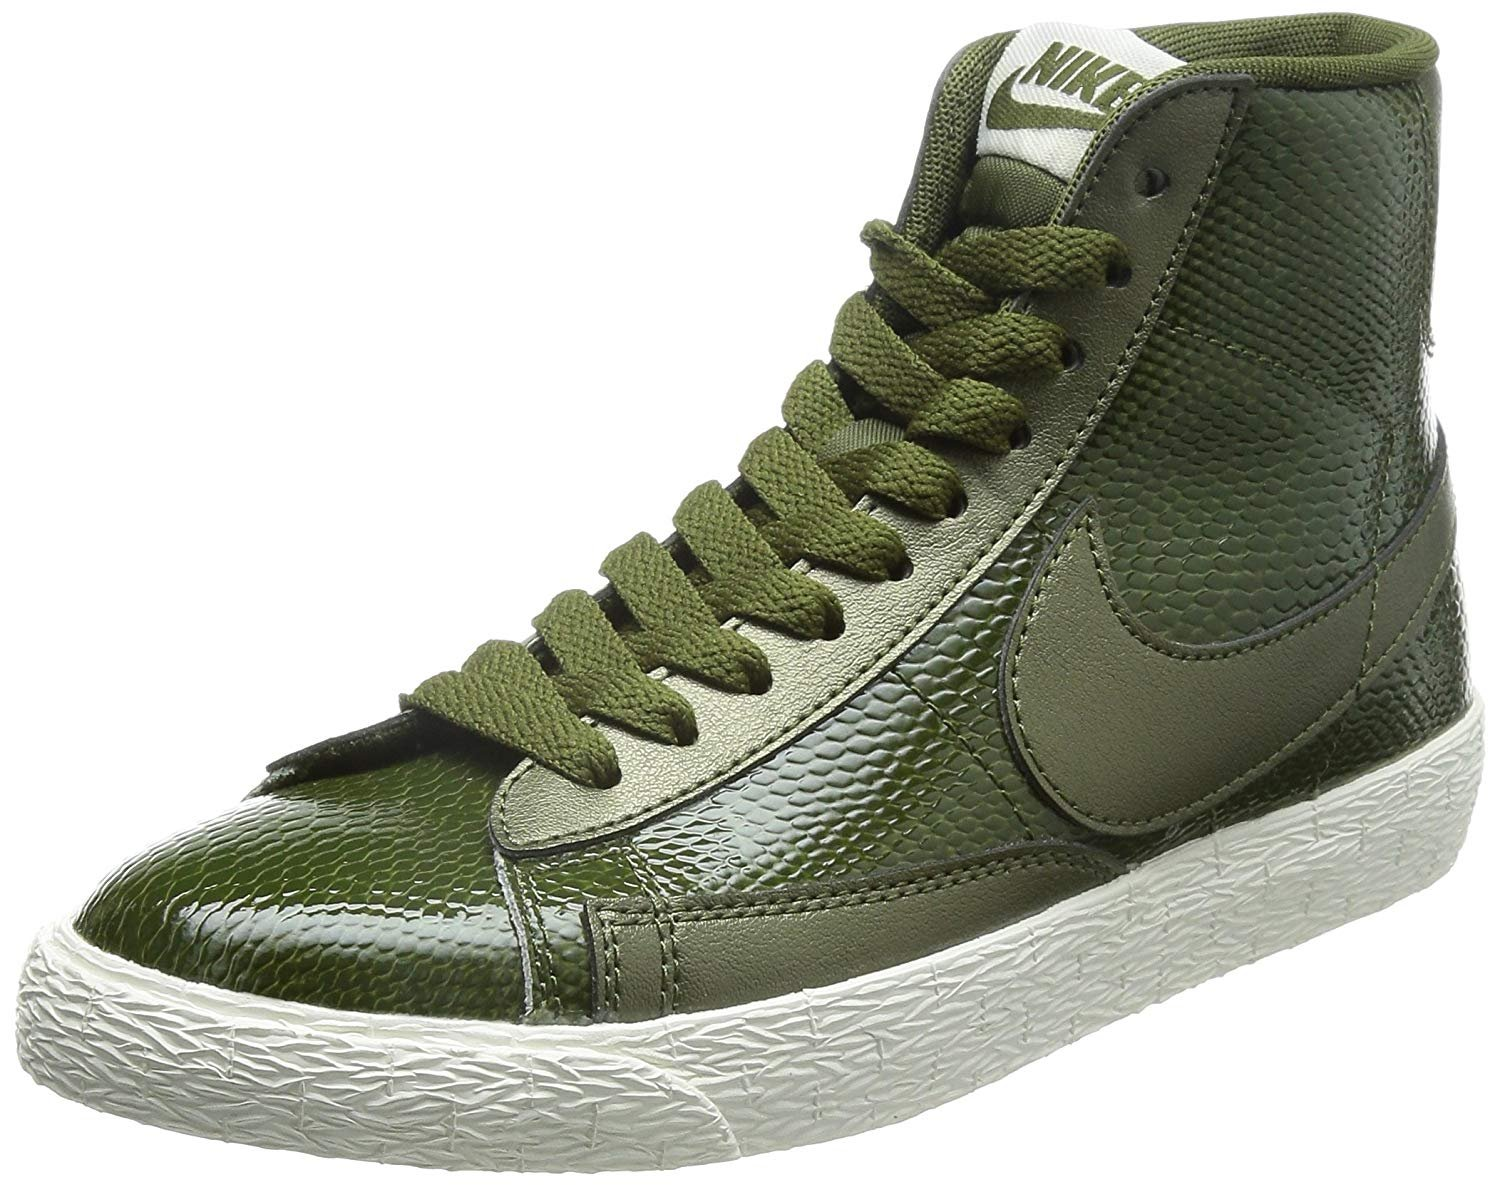 brand new 2744b a4fb1 Details about Nike Womens Blazer Mid LTR PRM Casual Shoe